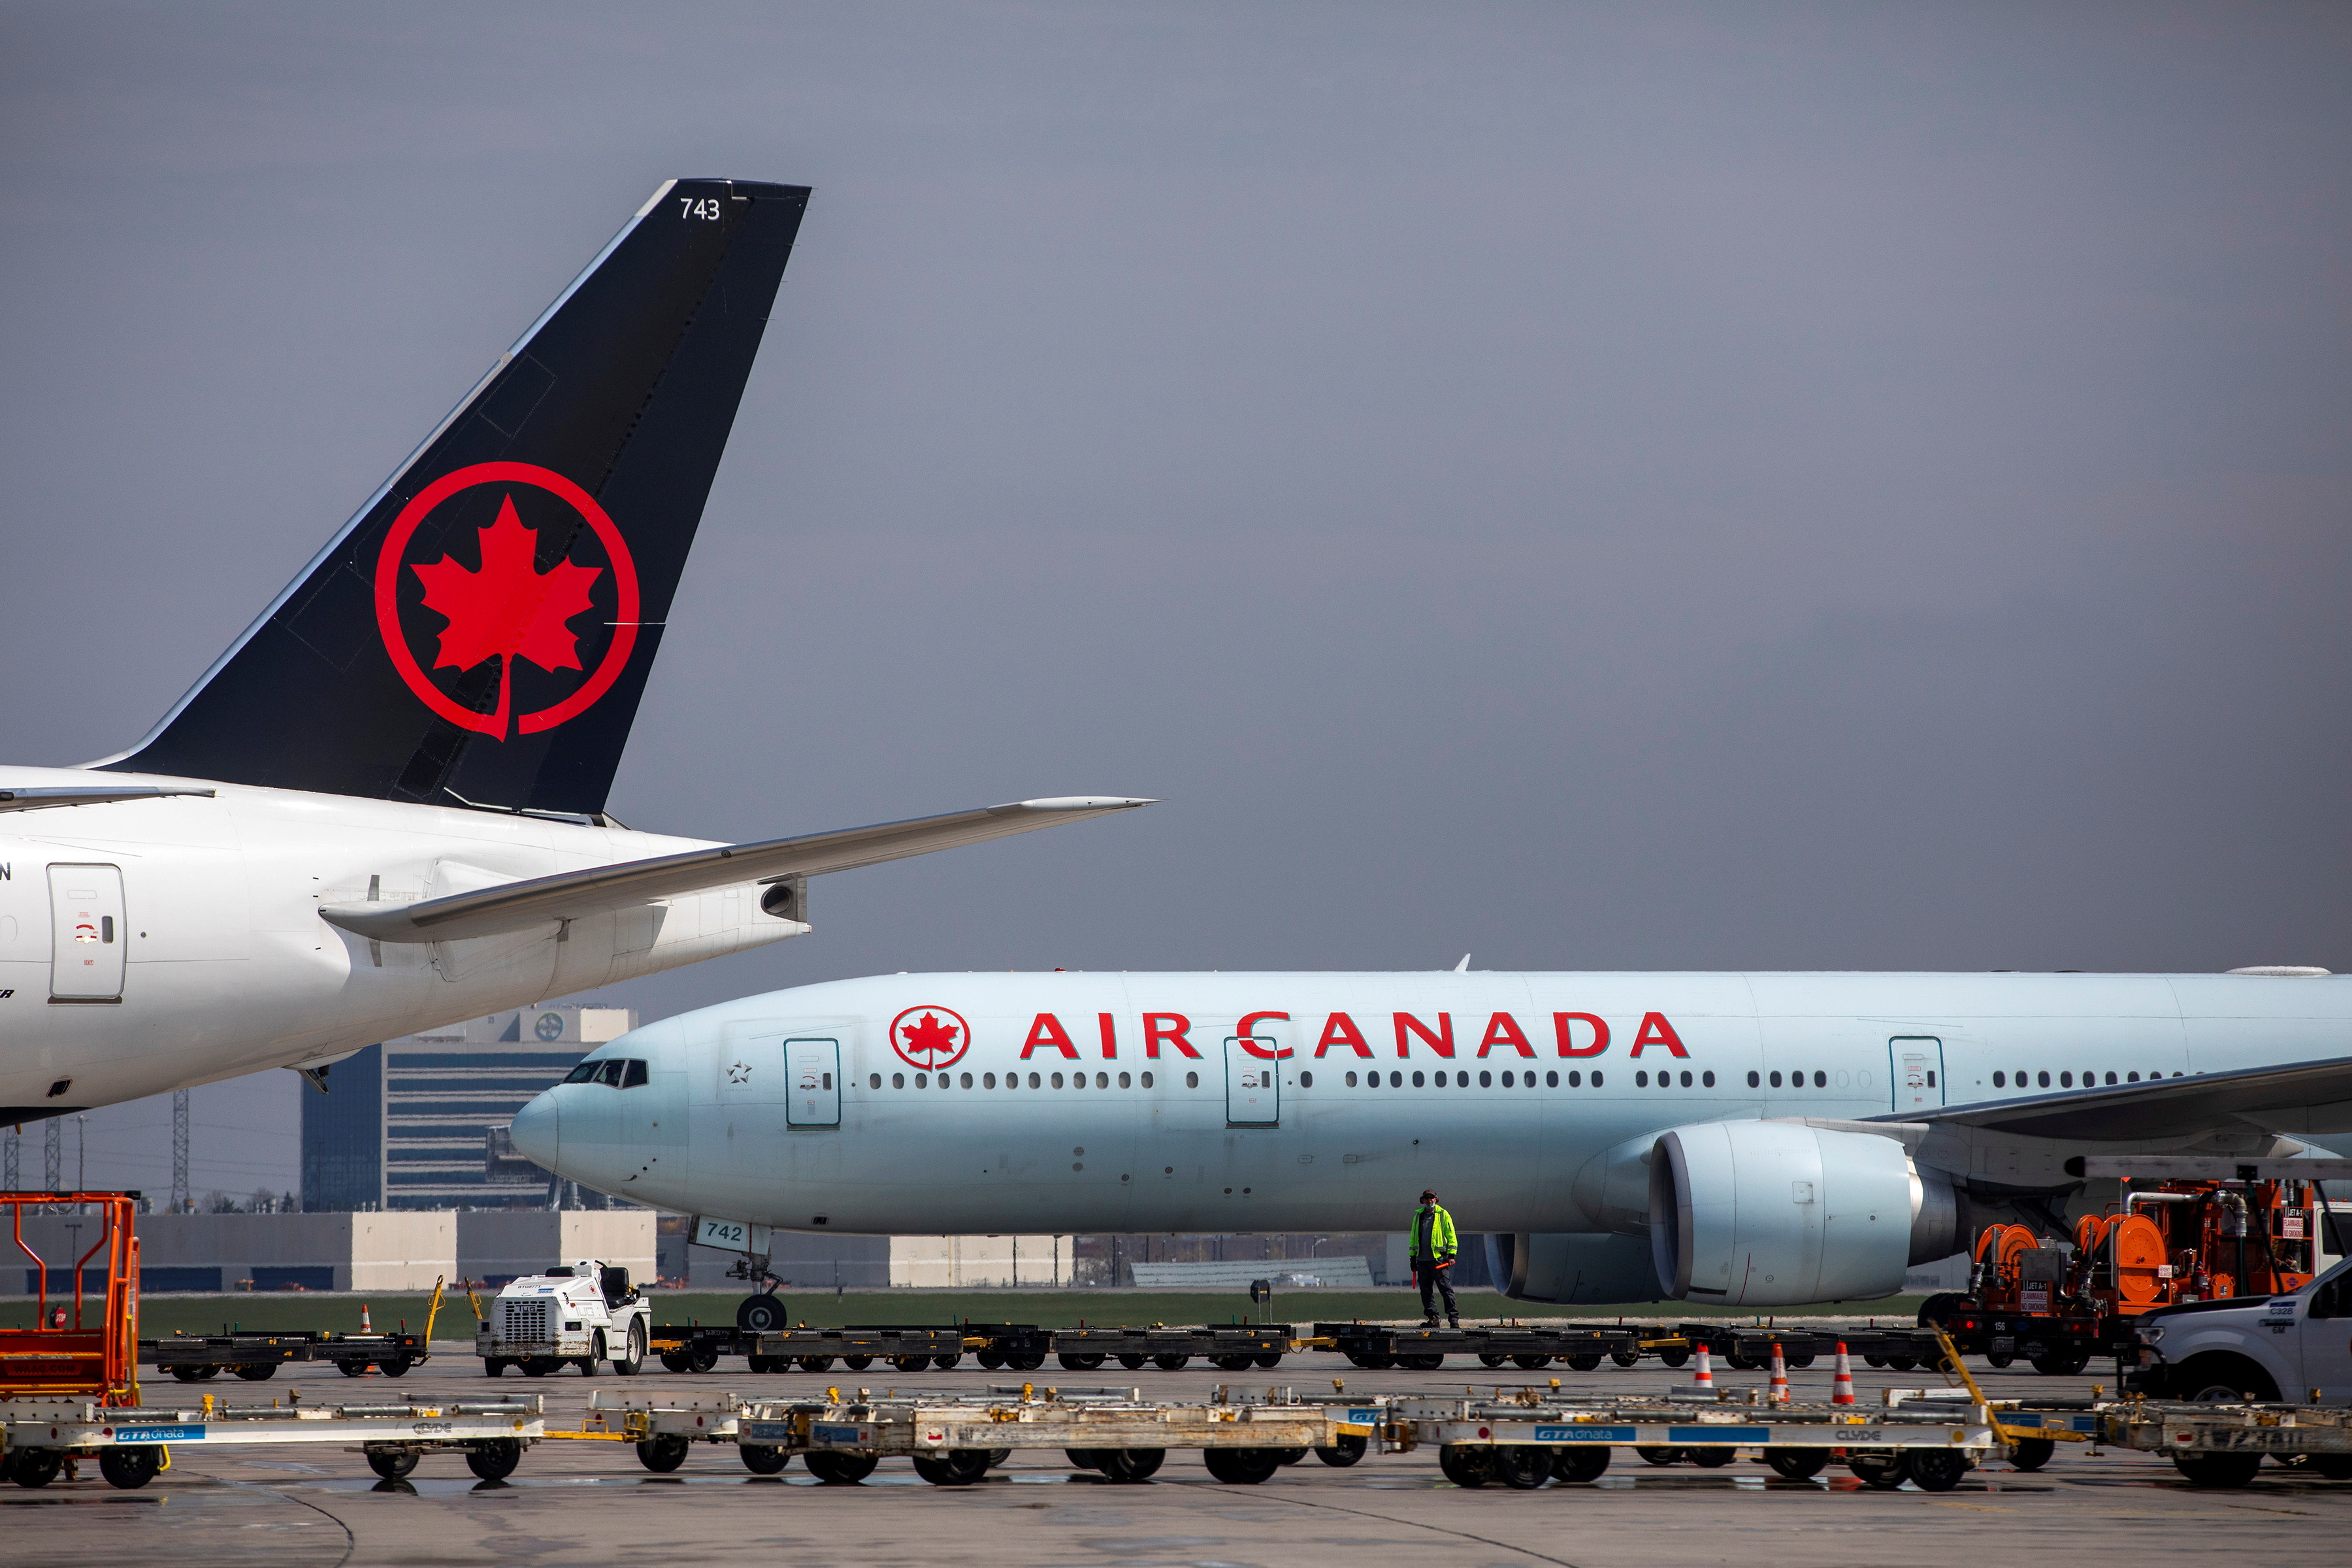 Air Canada planes are parked at Toronto Pearson Airport in Mississauga, Ontario, Canada April 28, 2021. REUTERS/Carlos Osorio